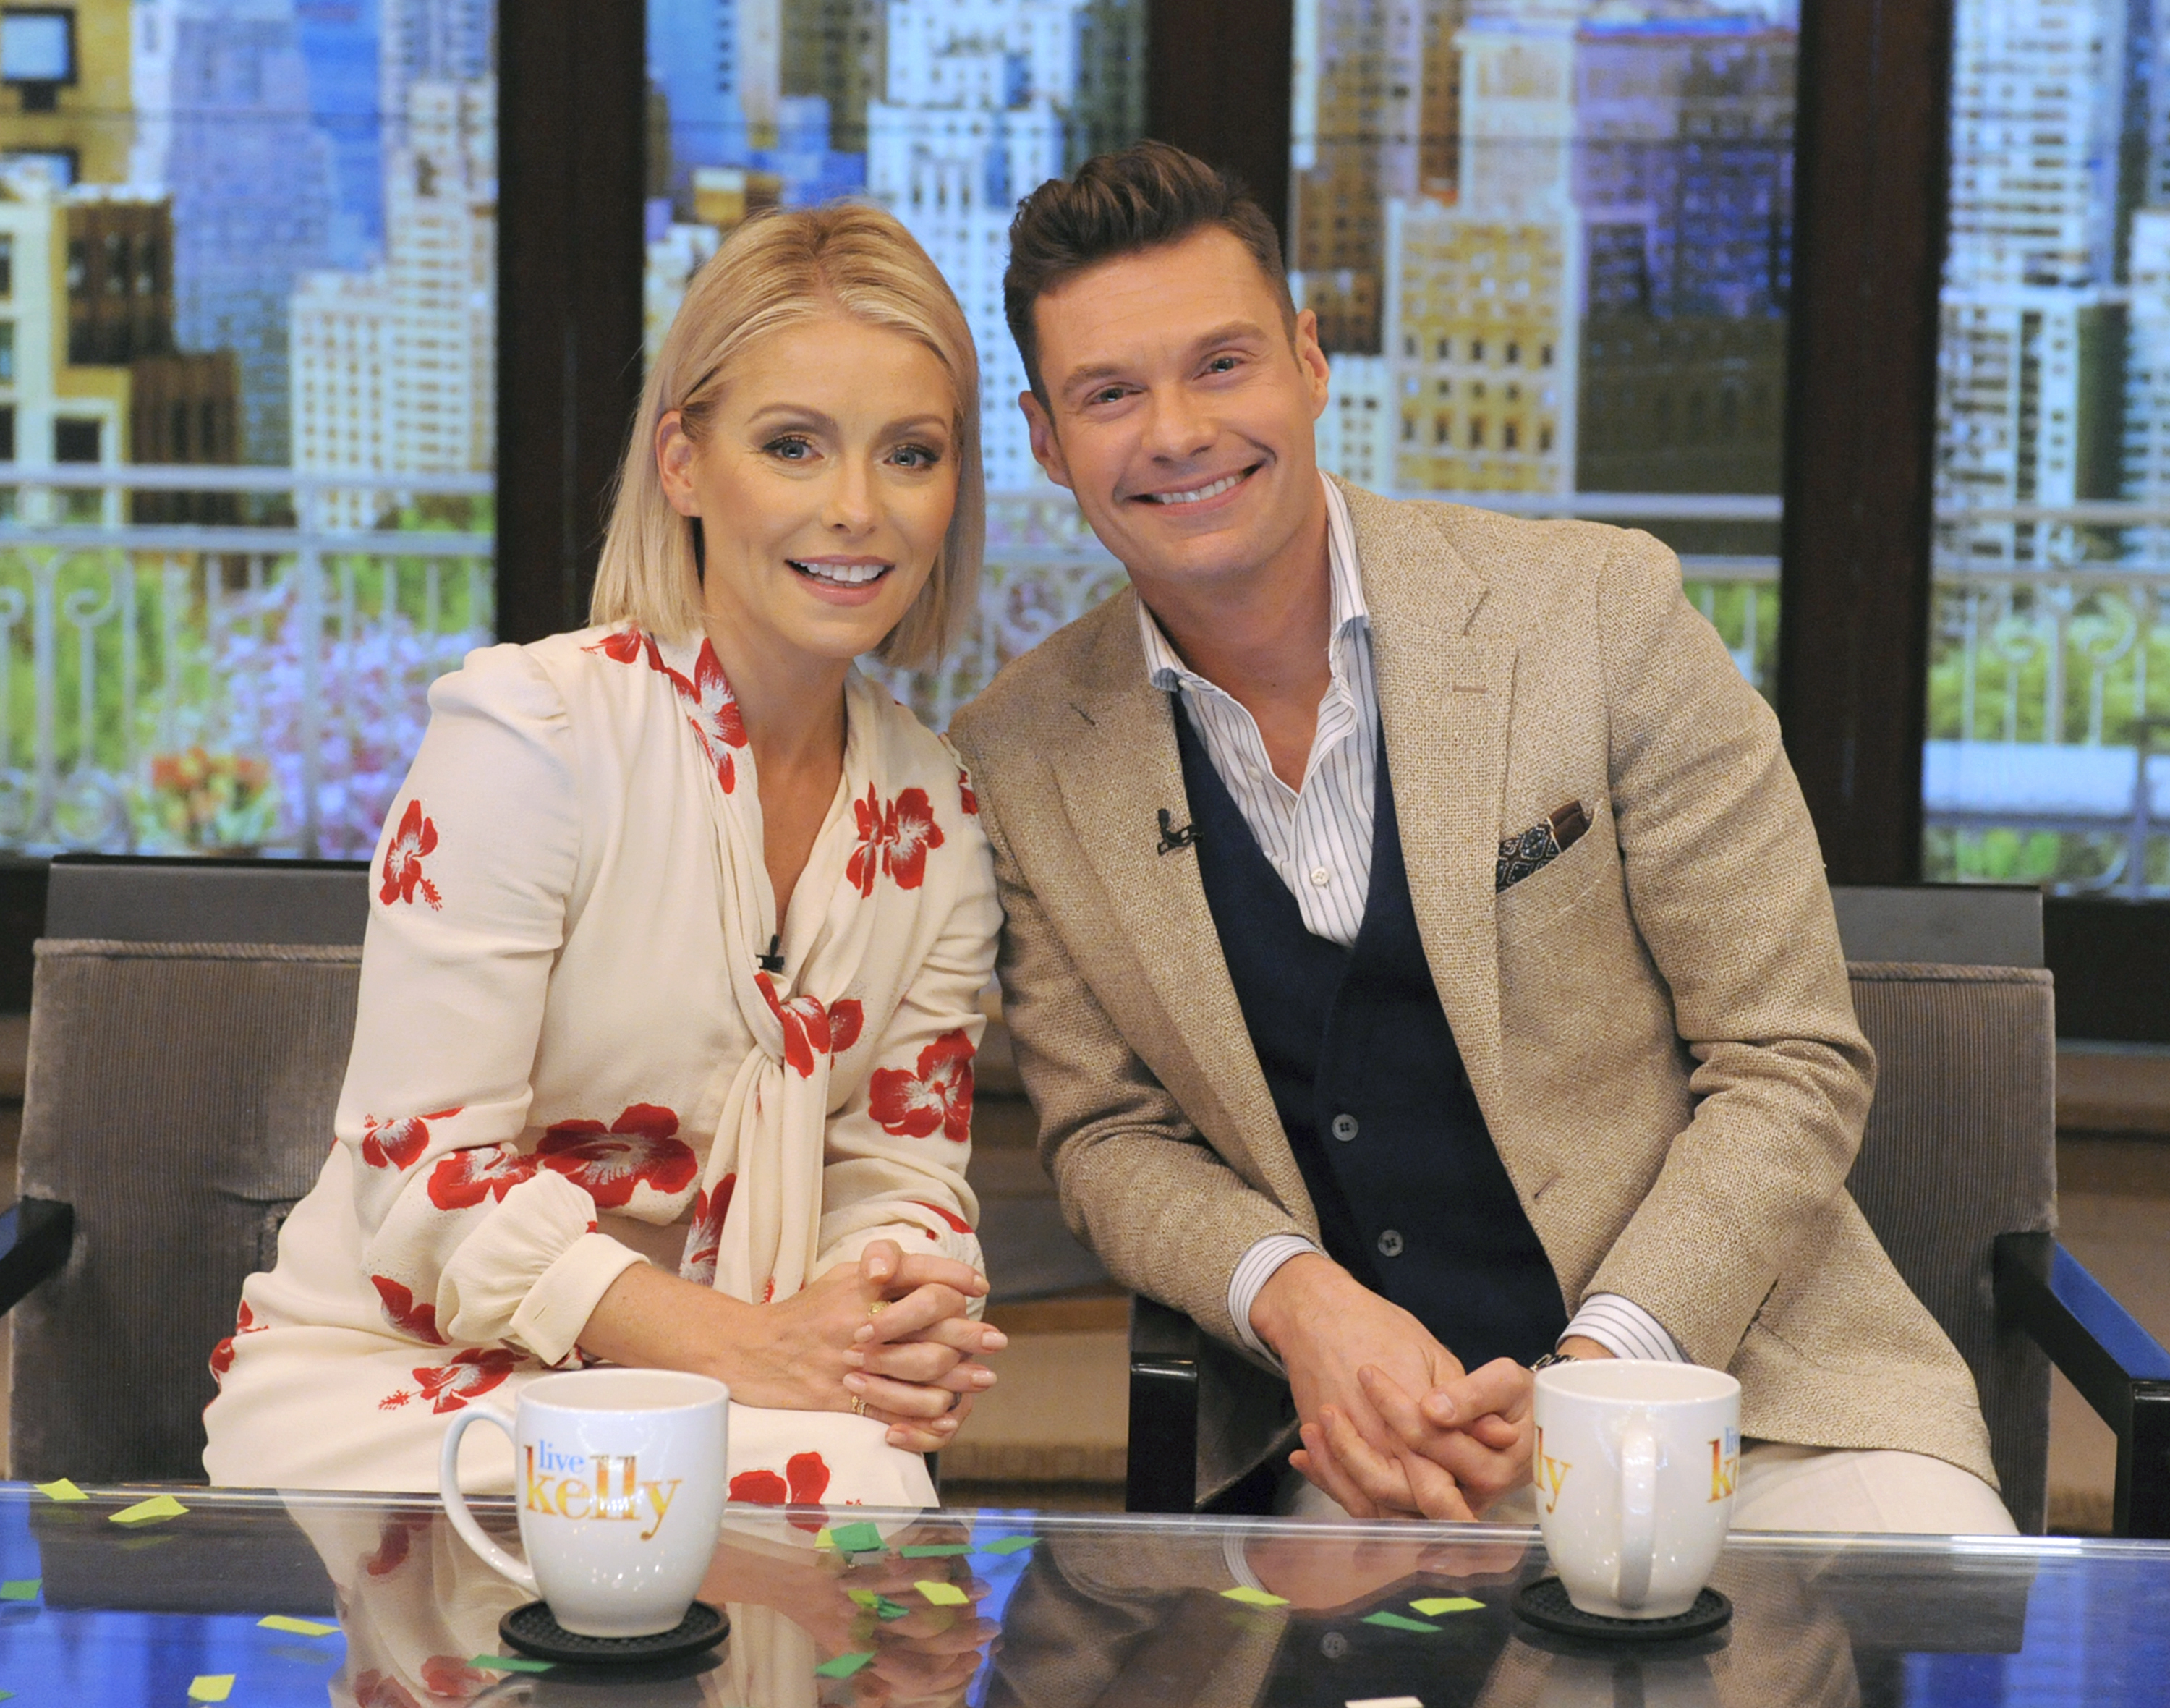 New report claims Ryan Seacrest dodged 'GMA' out of loyalty to Kelly Ripa